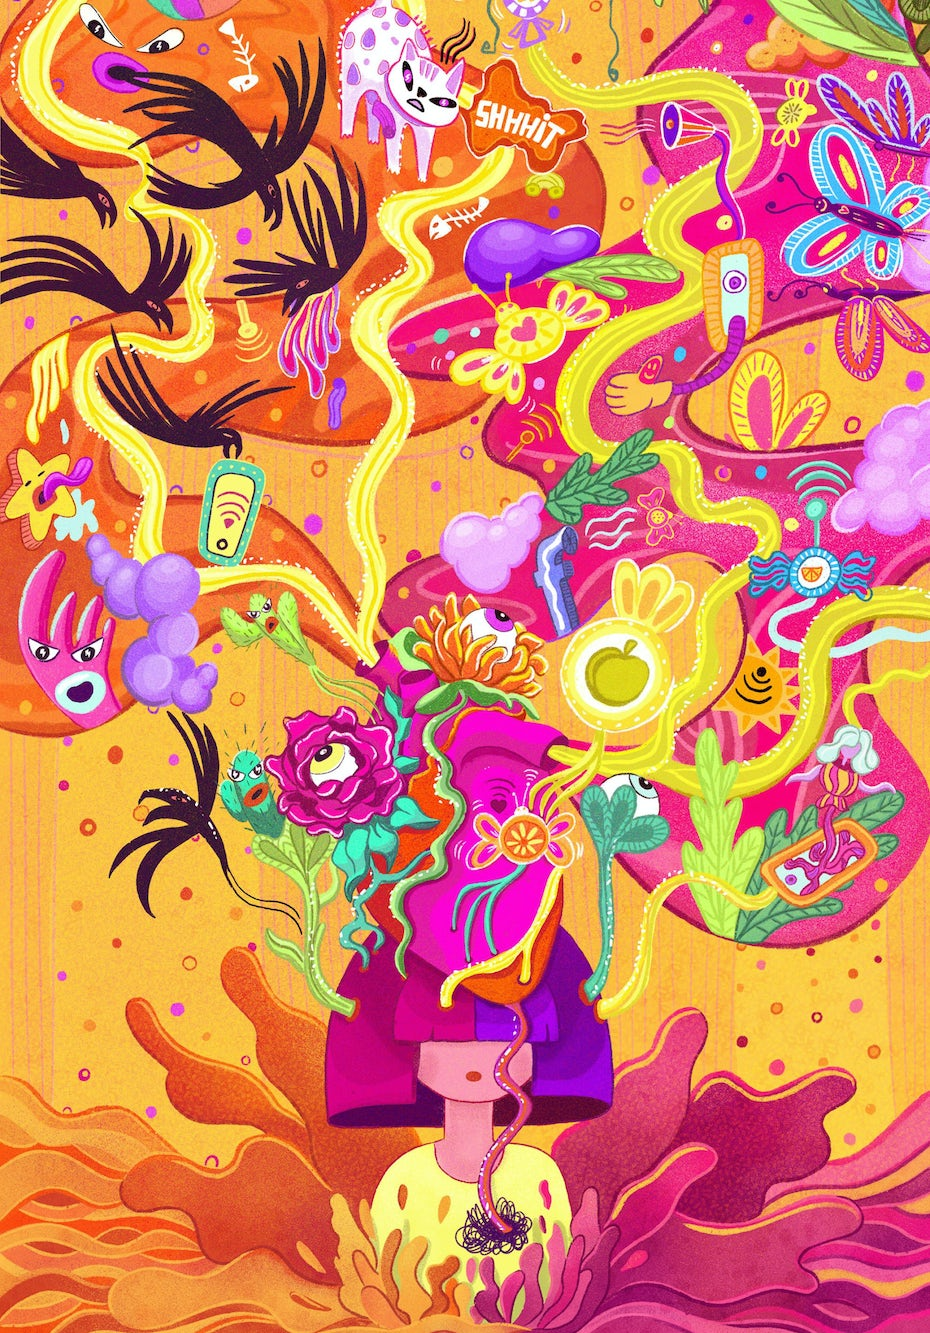 Vivid, surreal and abstract illustration